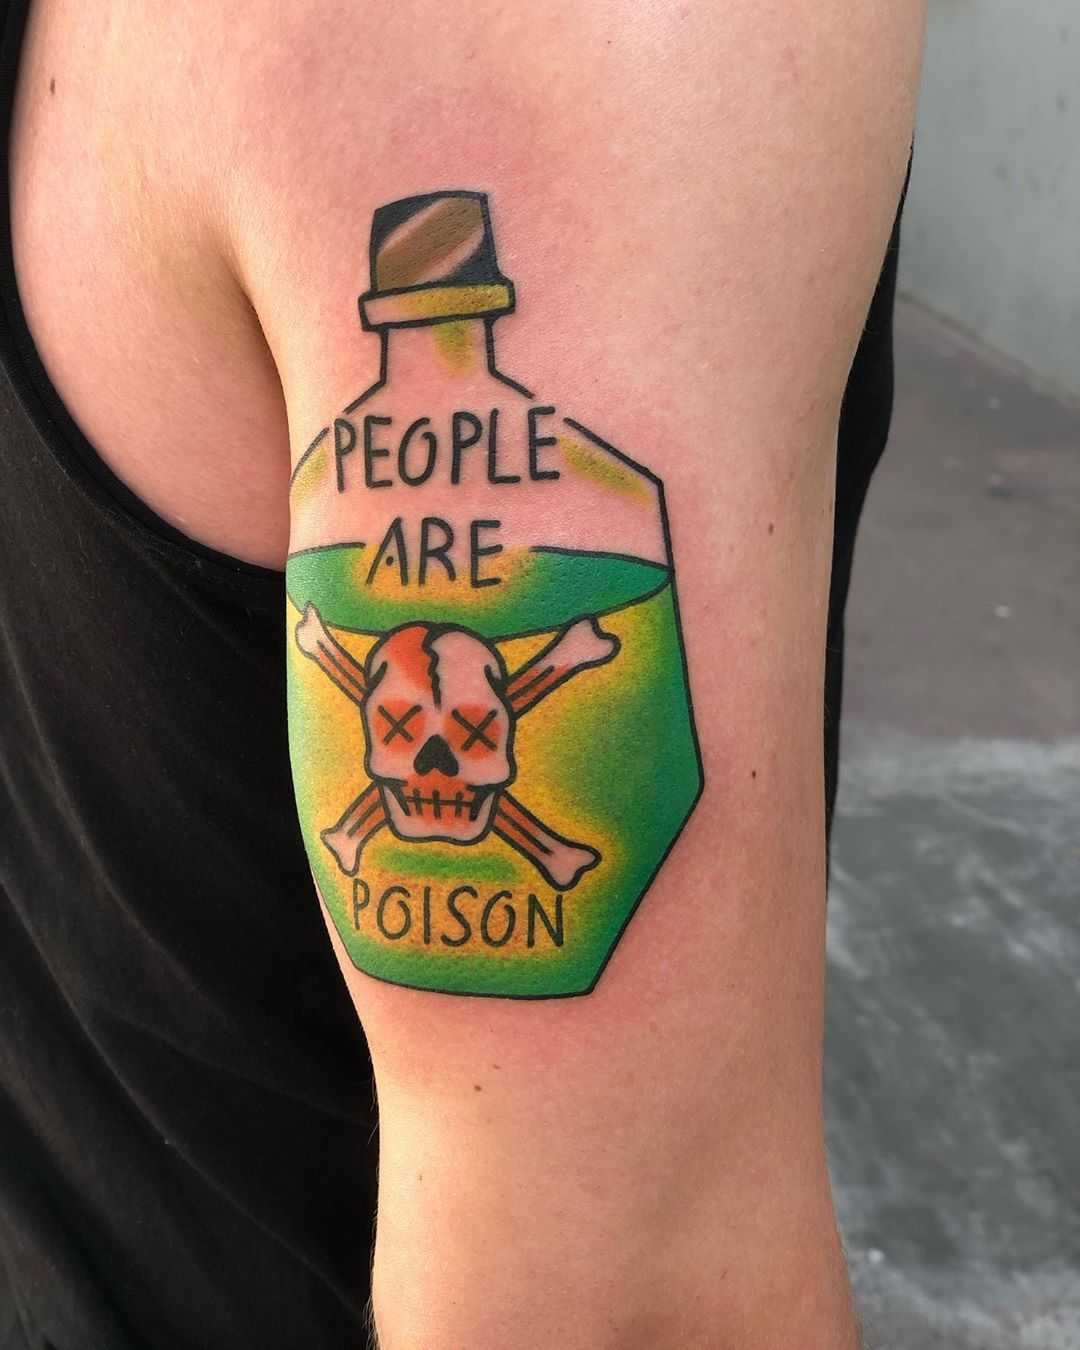 People are poison tattoo by Mike Nofuck